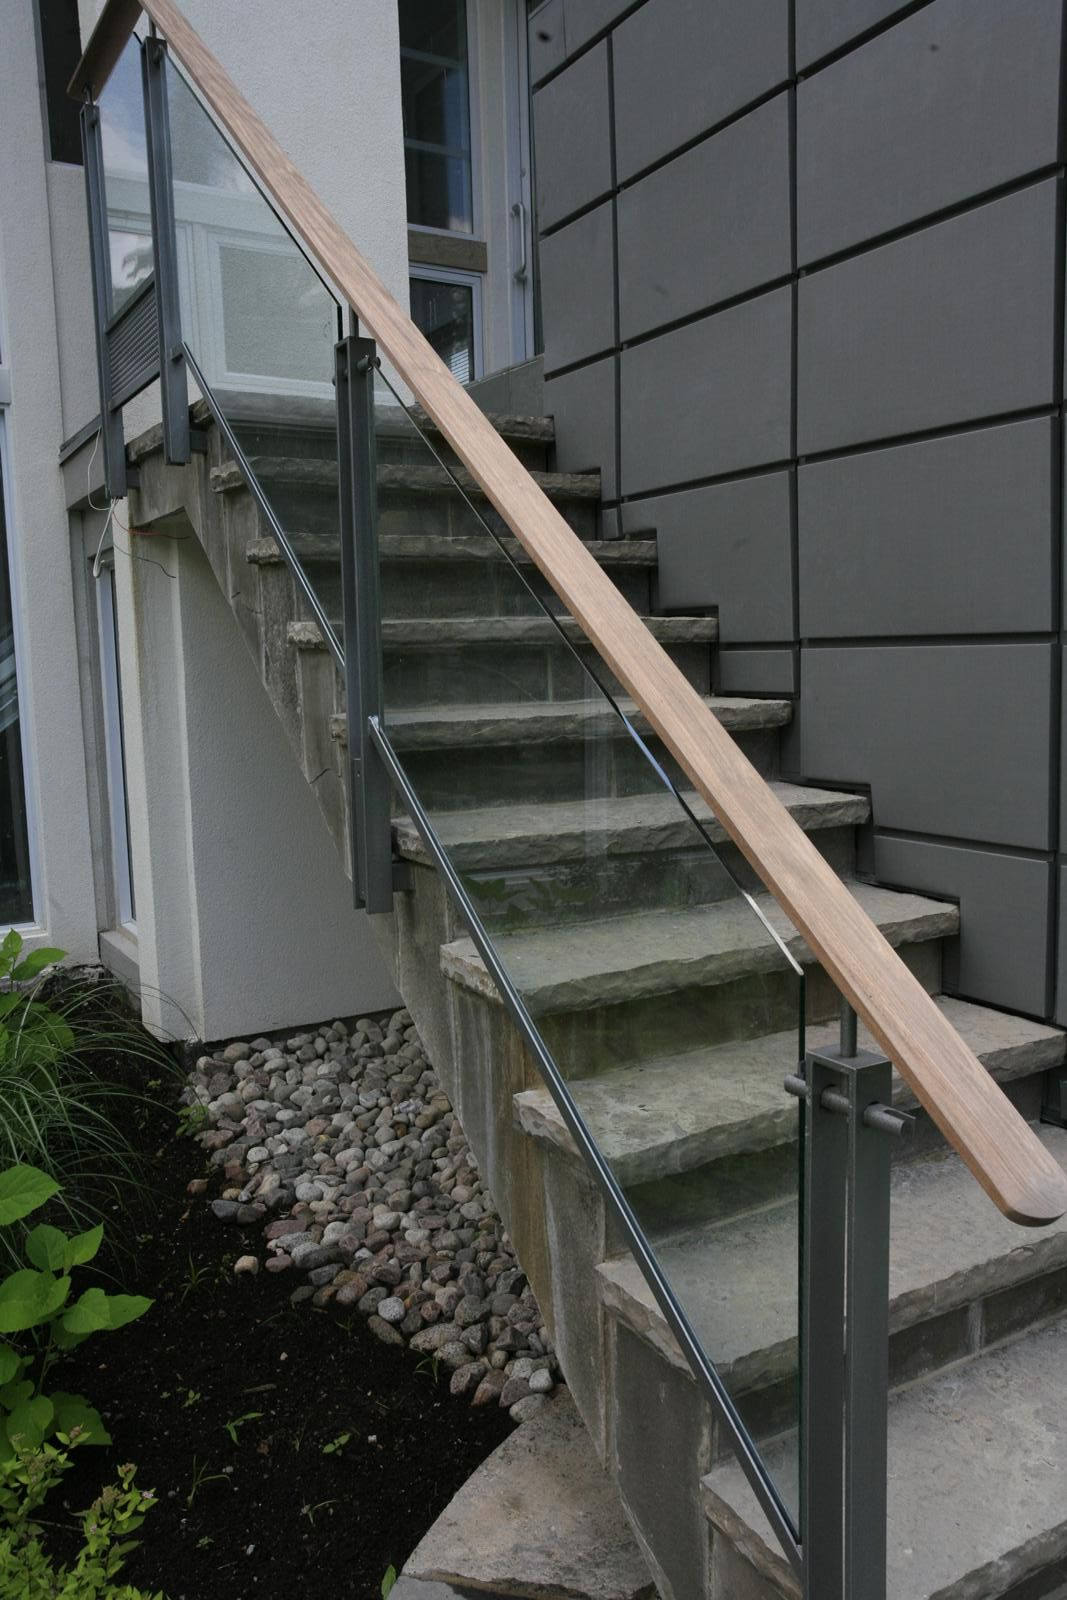 Glass Railings Exterior Exterior Wooden Cap Glass | Wooden Stairs Railing Design With Glass